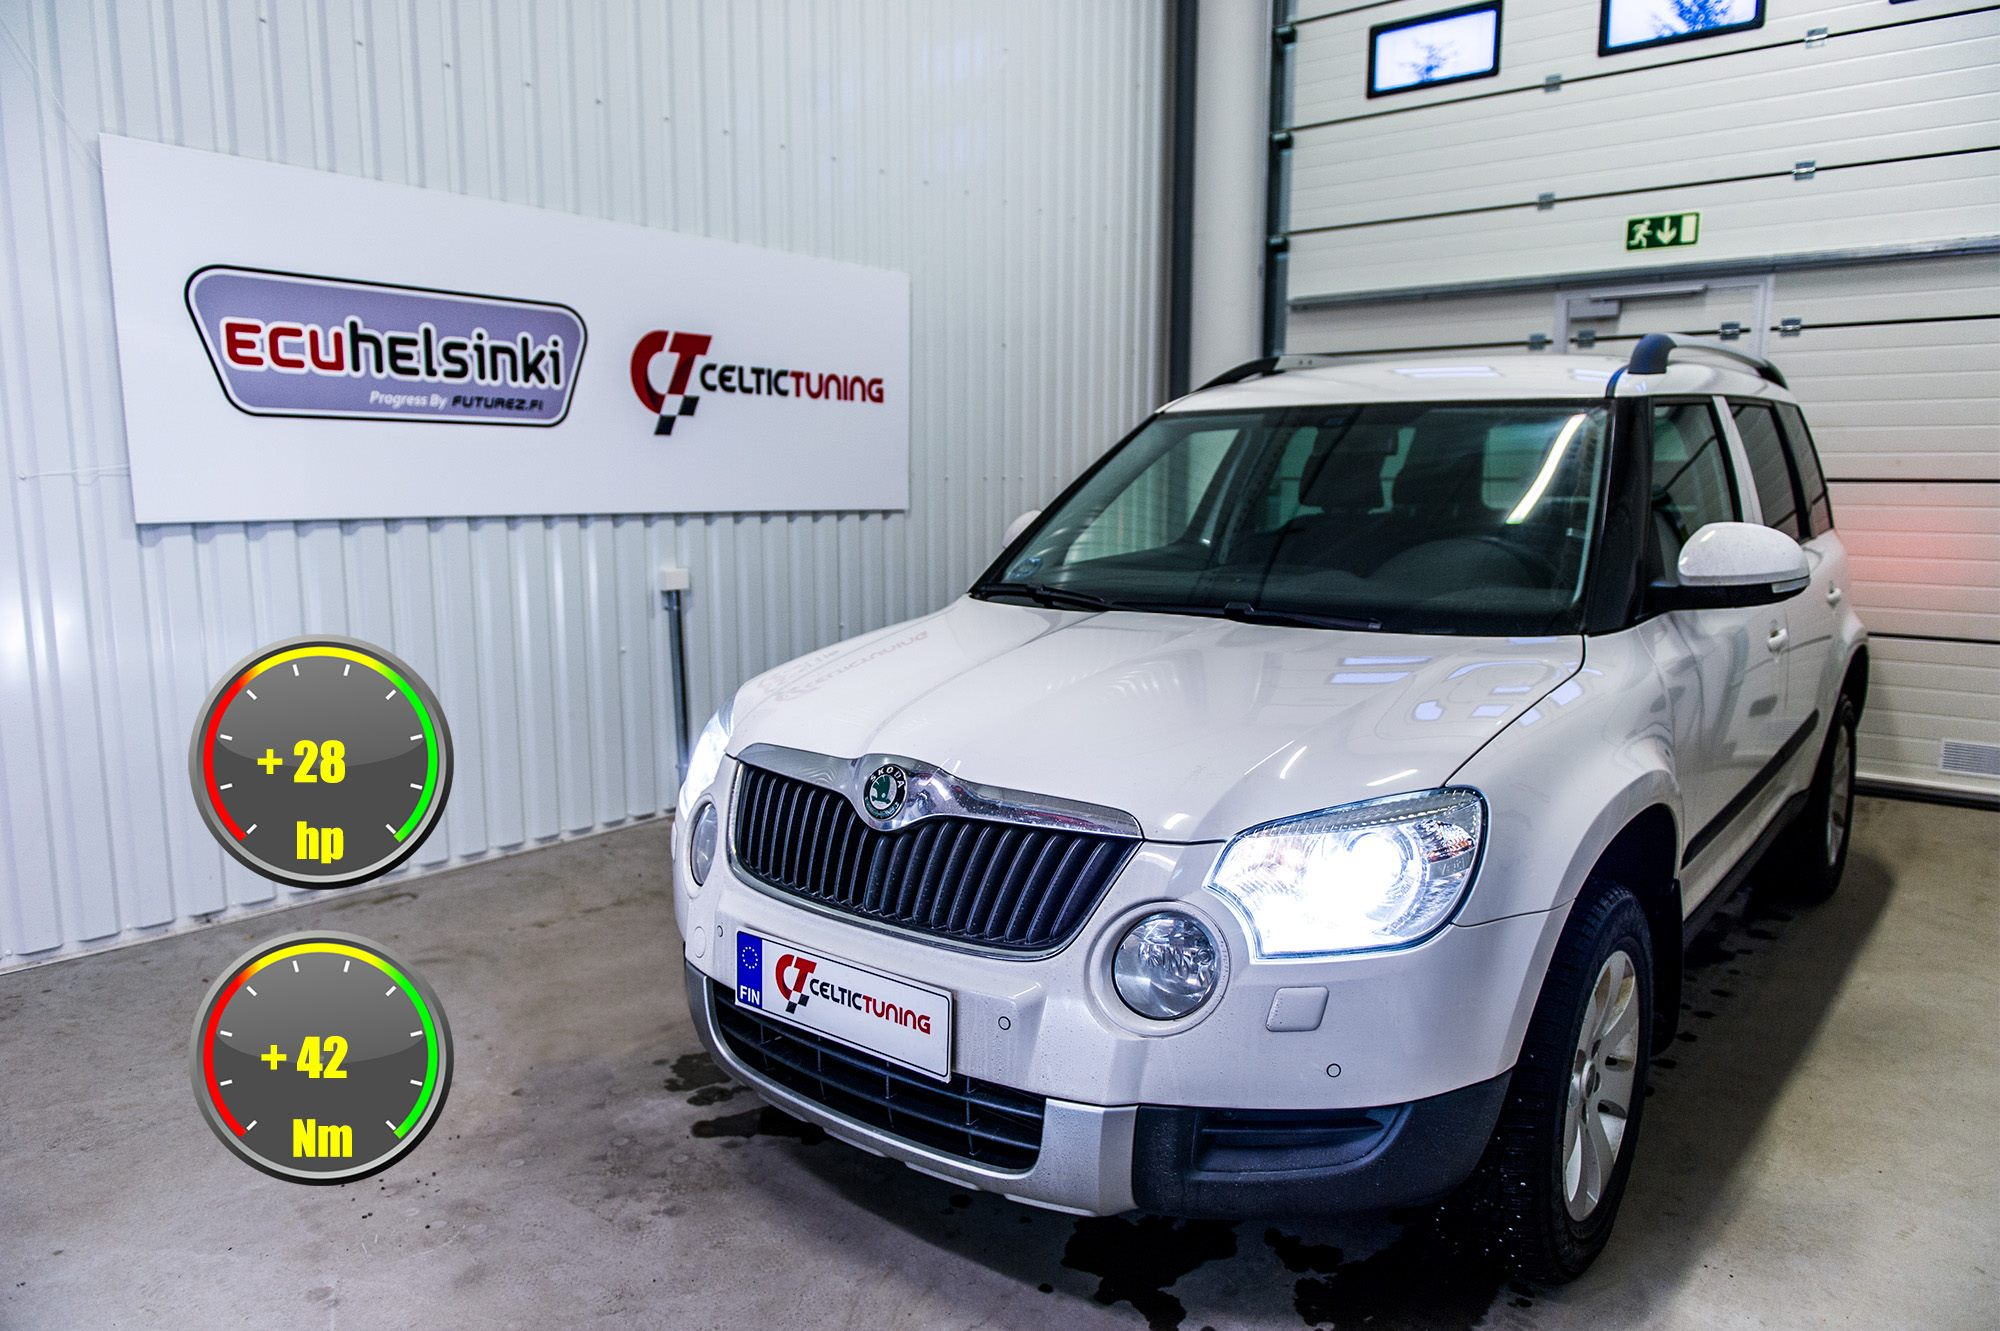 Skoda Yeti optimointi celtic tuning